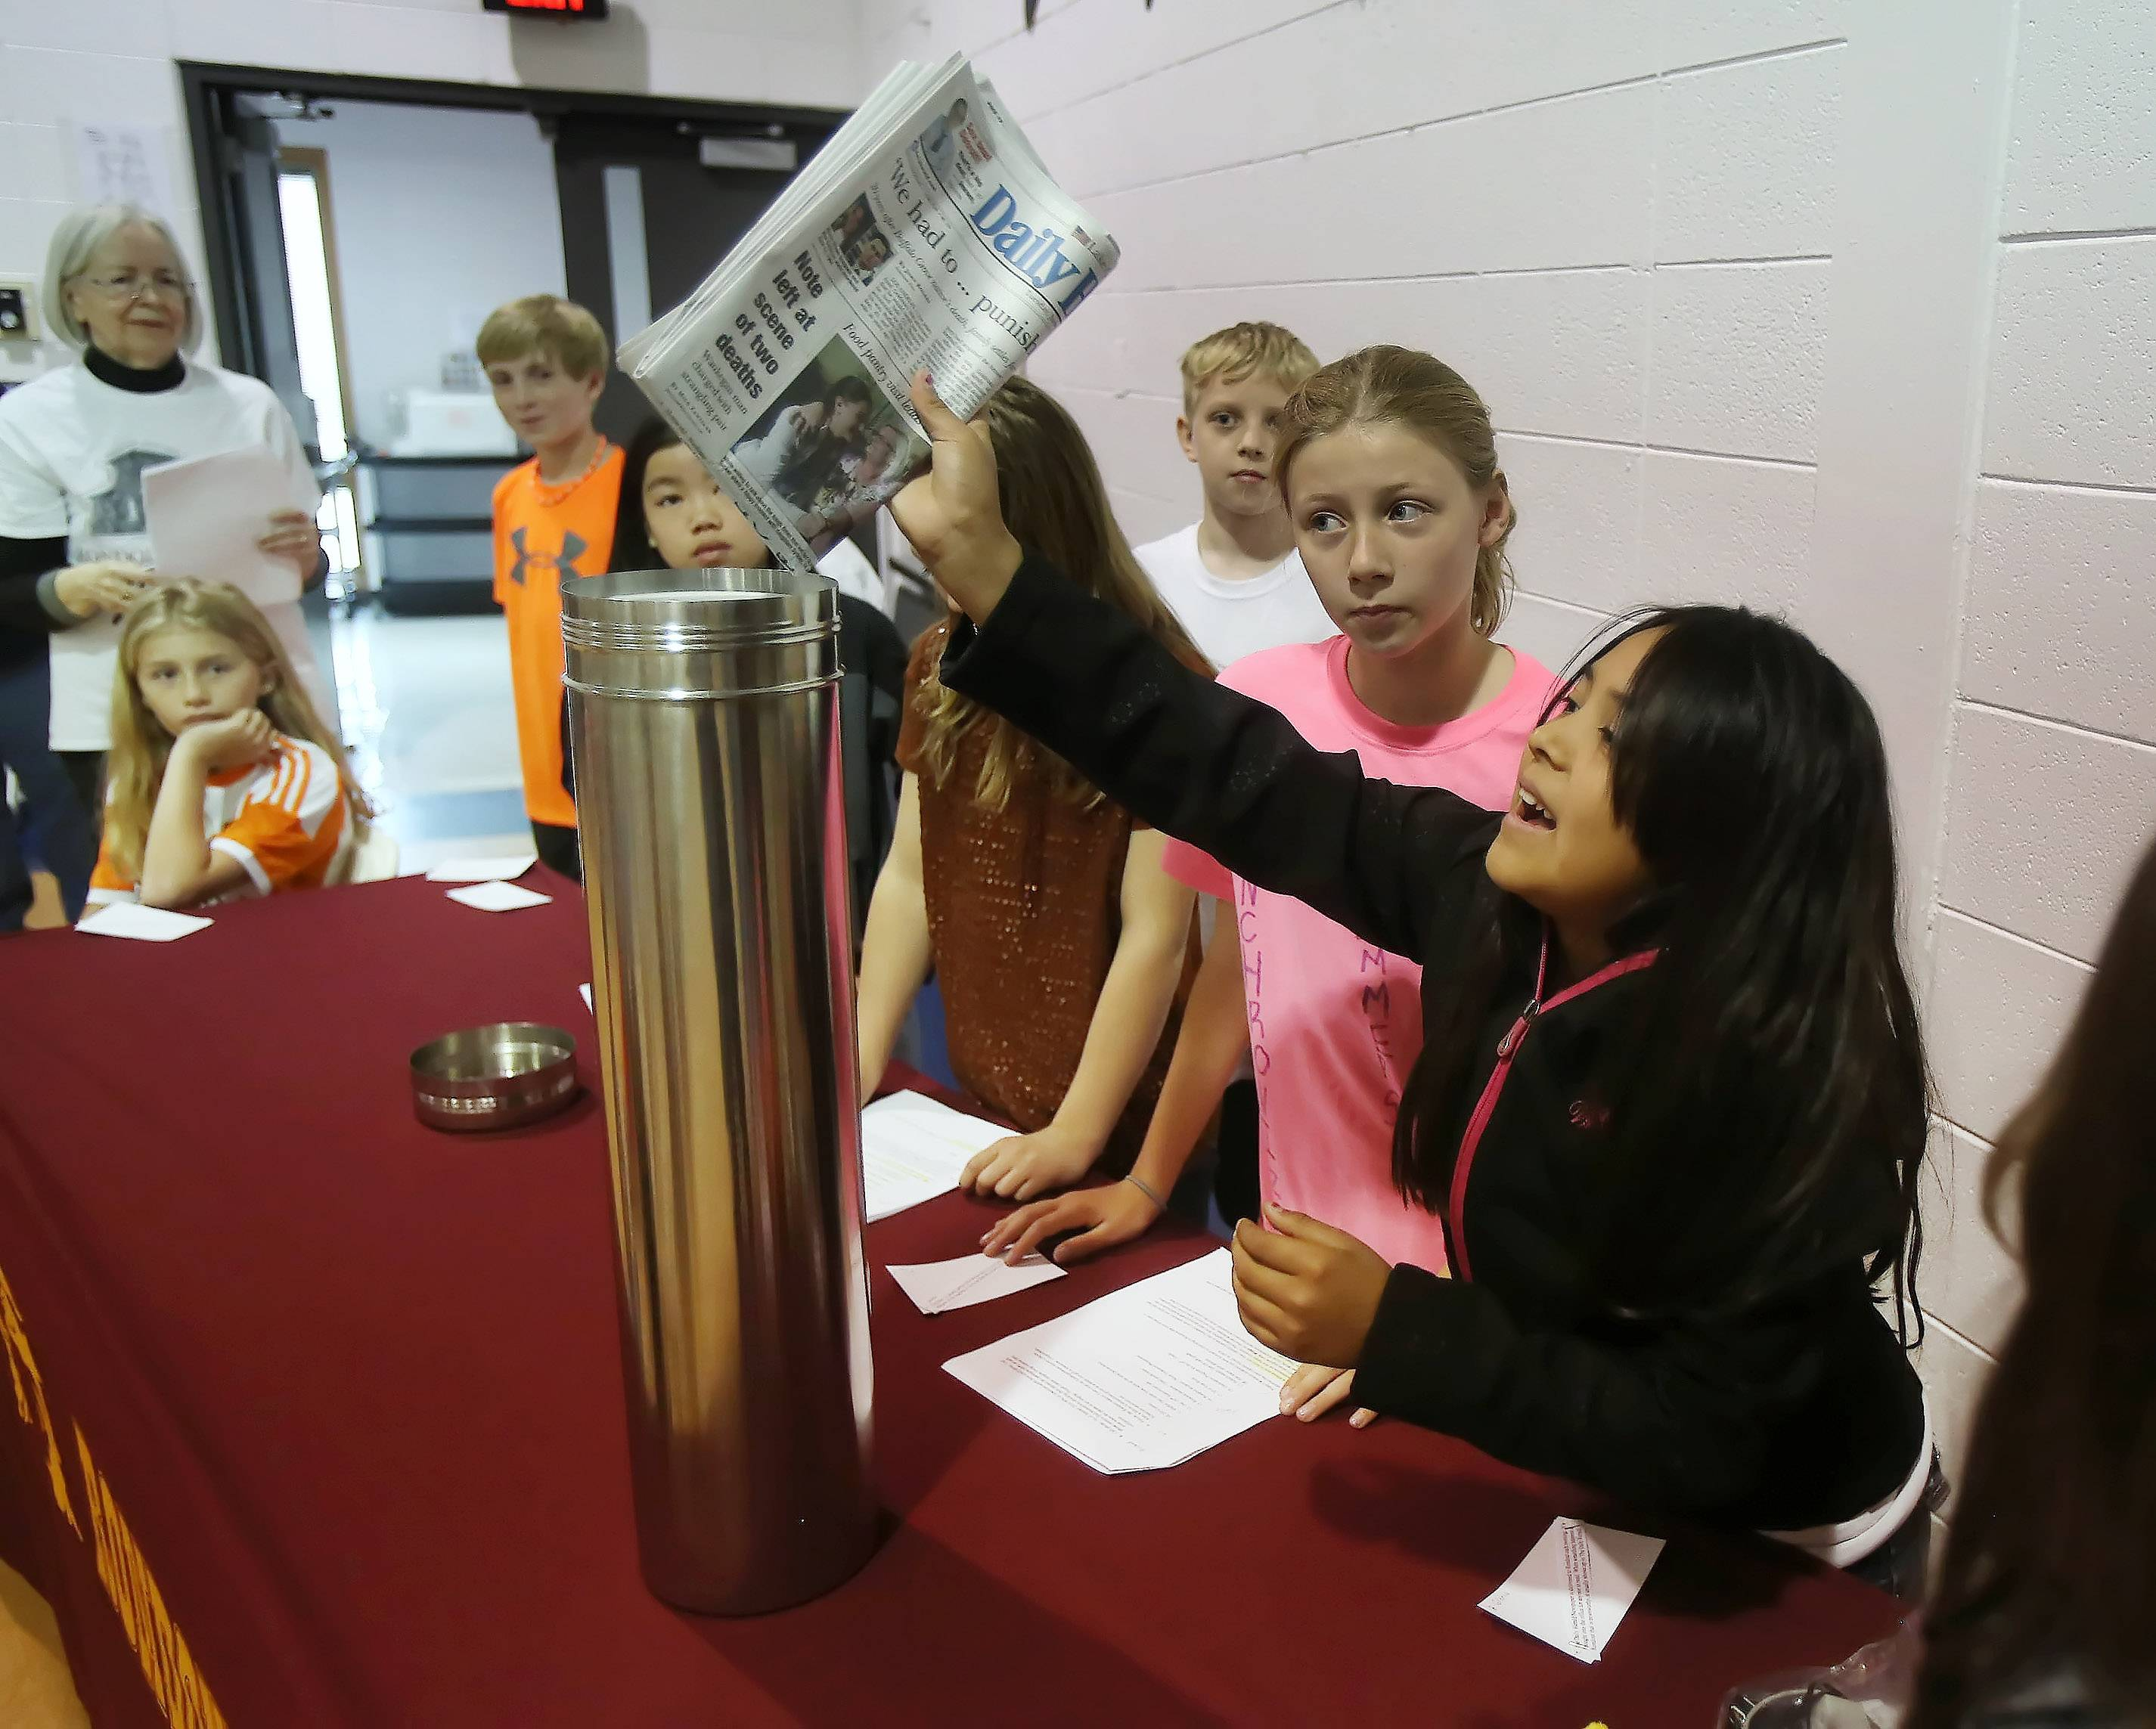 Rondout Elementary School fourth-grader Gloria Barbosa-Gomez places a newspaper in a time capsule during a ceremony Tuesday. As part of the school's sesquicentennial celebration, the time capsule included a flash drive, cellphone, newspaper, Post-it's, a Toobaloo and the school mascot Falcon toy.